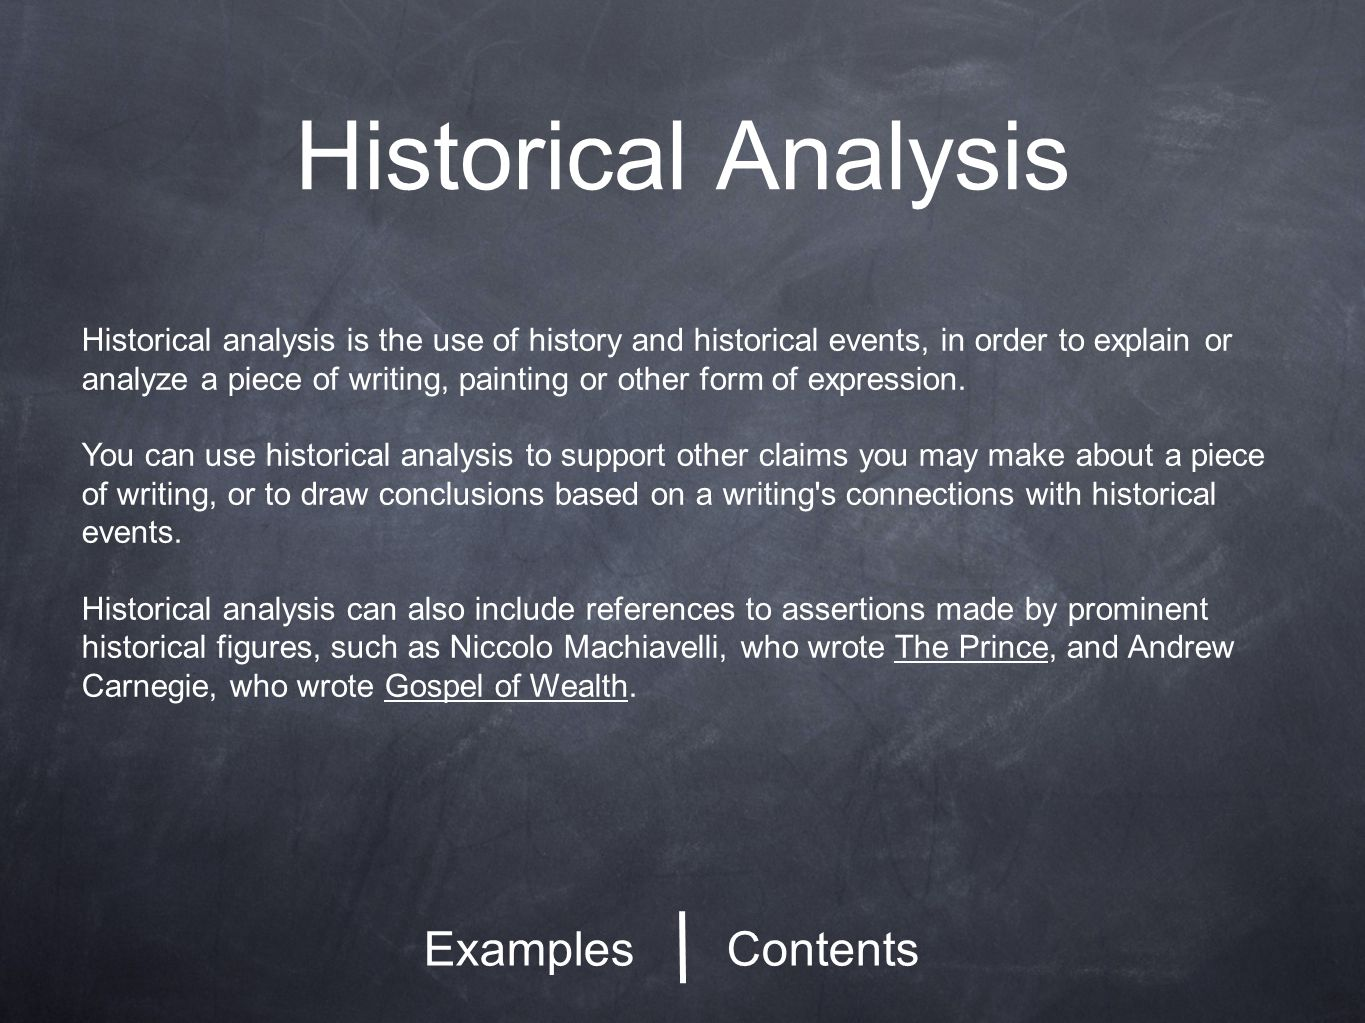 Historical Analysis ContentsExamples Historical analysis is the use of history and historical events, in order to explain or analyze a piece of writing, painting or other form of expression.